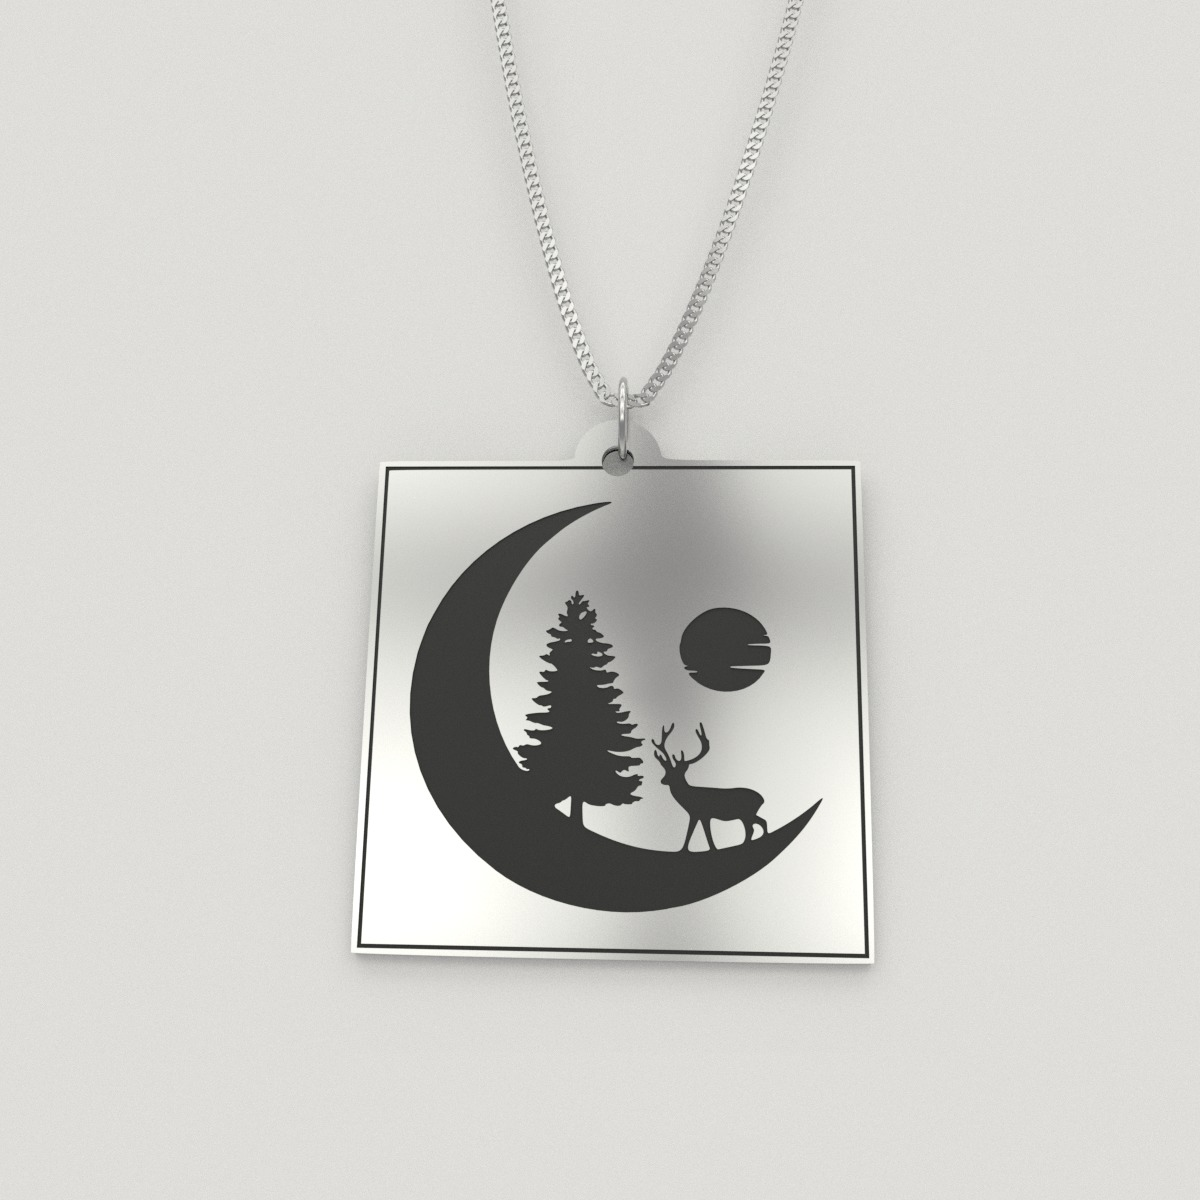 Moon Silhouette With Deer Charm Necklace